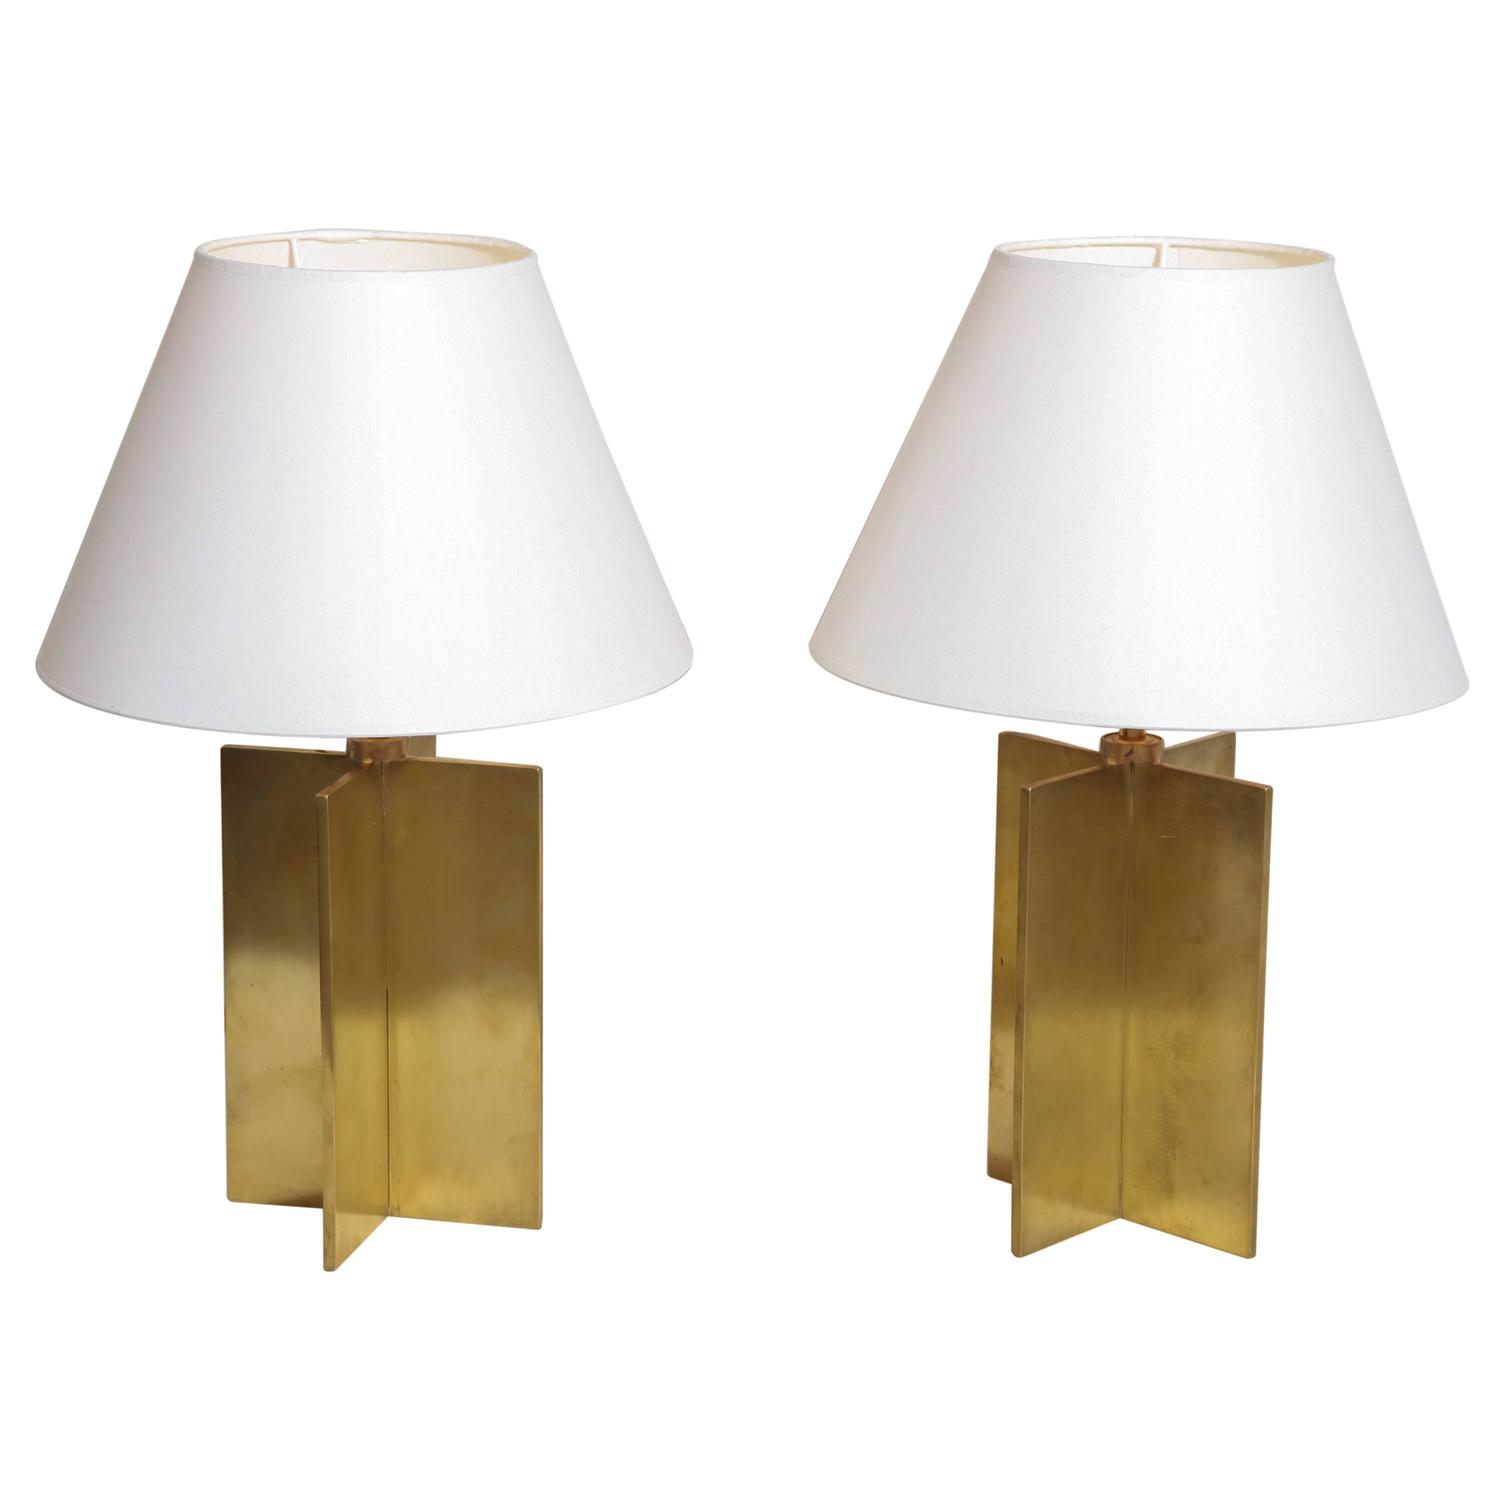 Jean michel frank french art deco pair of croisillon table lamps jean michel frank french art deco pair of croisillon table lamps for sale at 1stdibs geotapseo Gallery